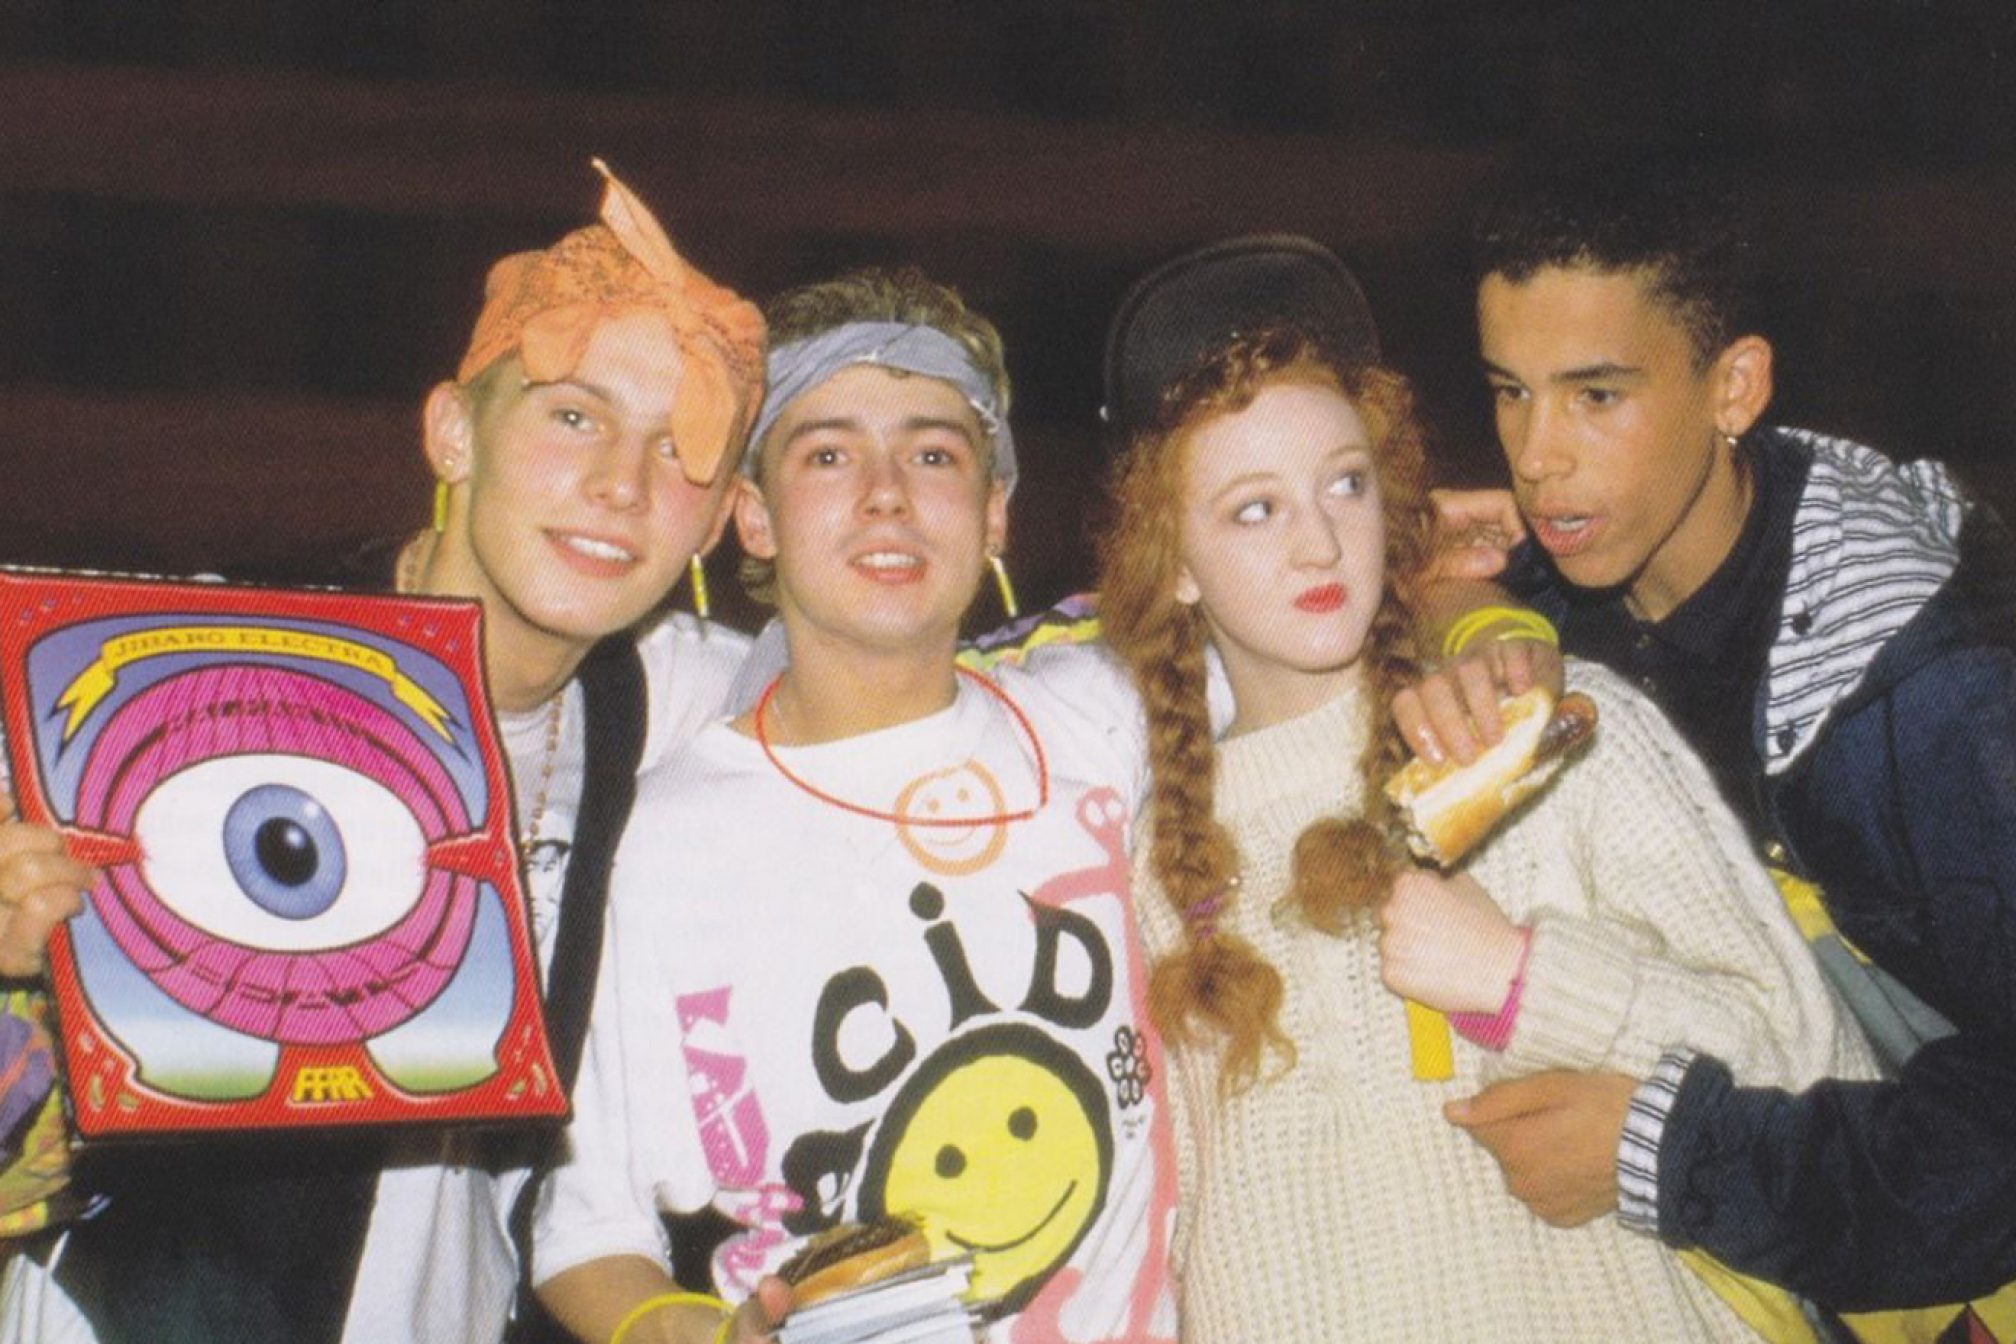 Acid house fashion was outrageous and we love it - Fashion